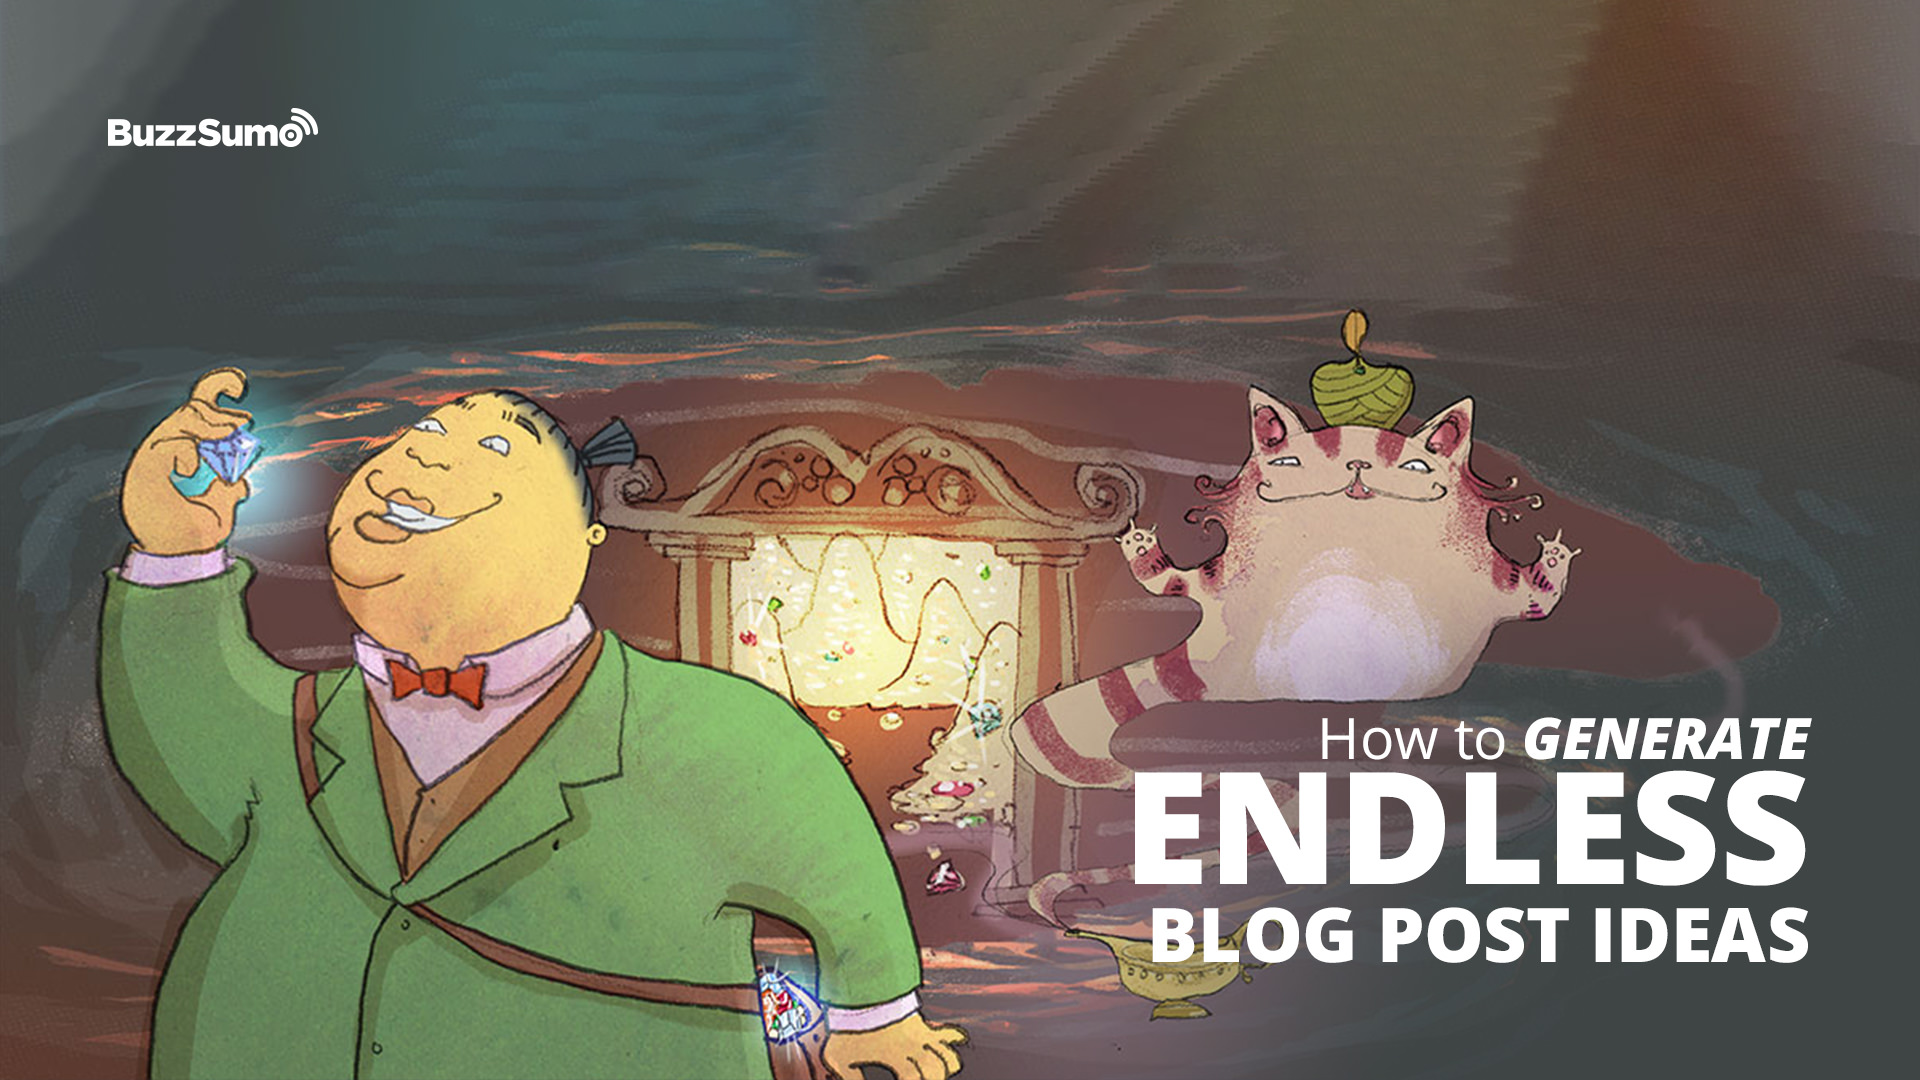 How to Generate Endless Blog Post Ideas for Content Marketing